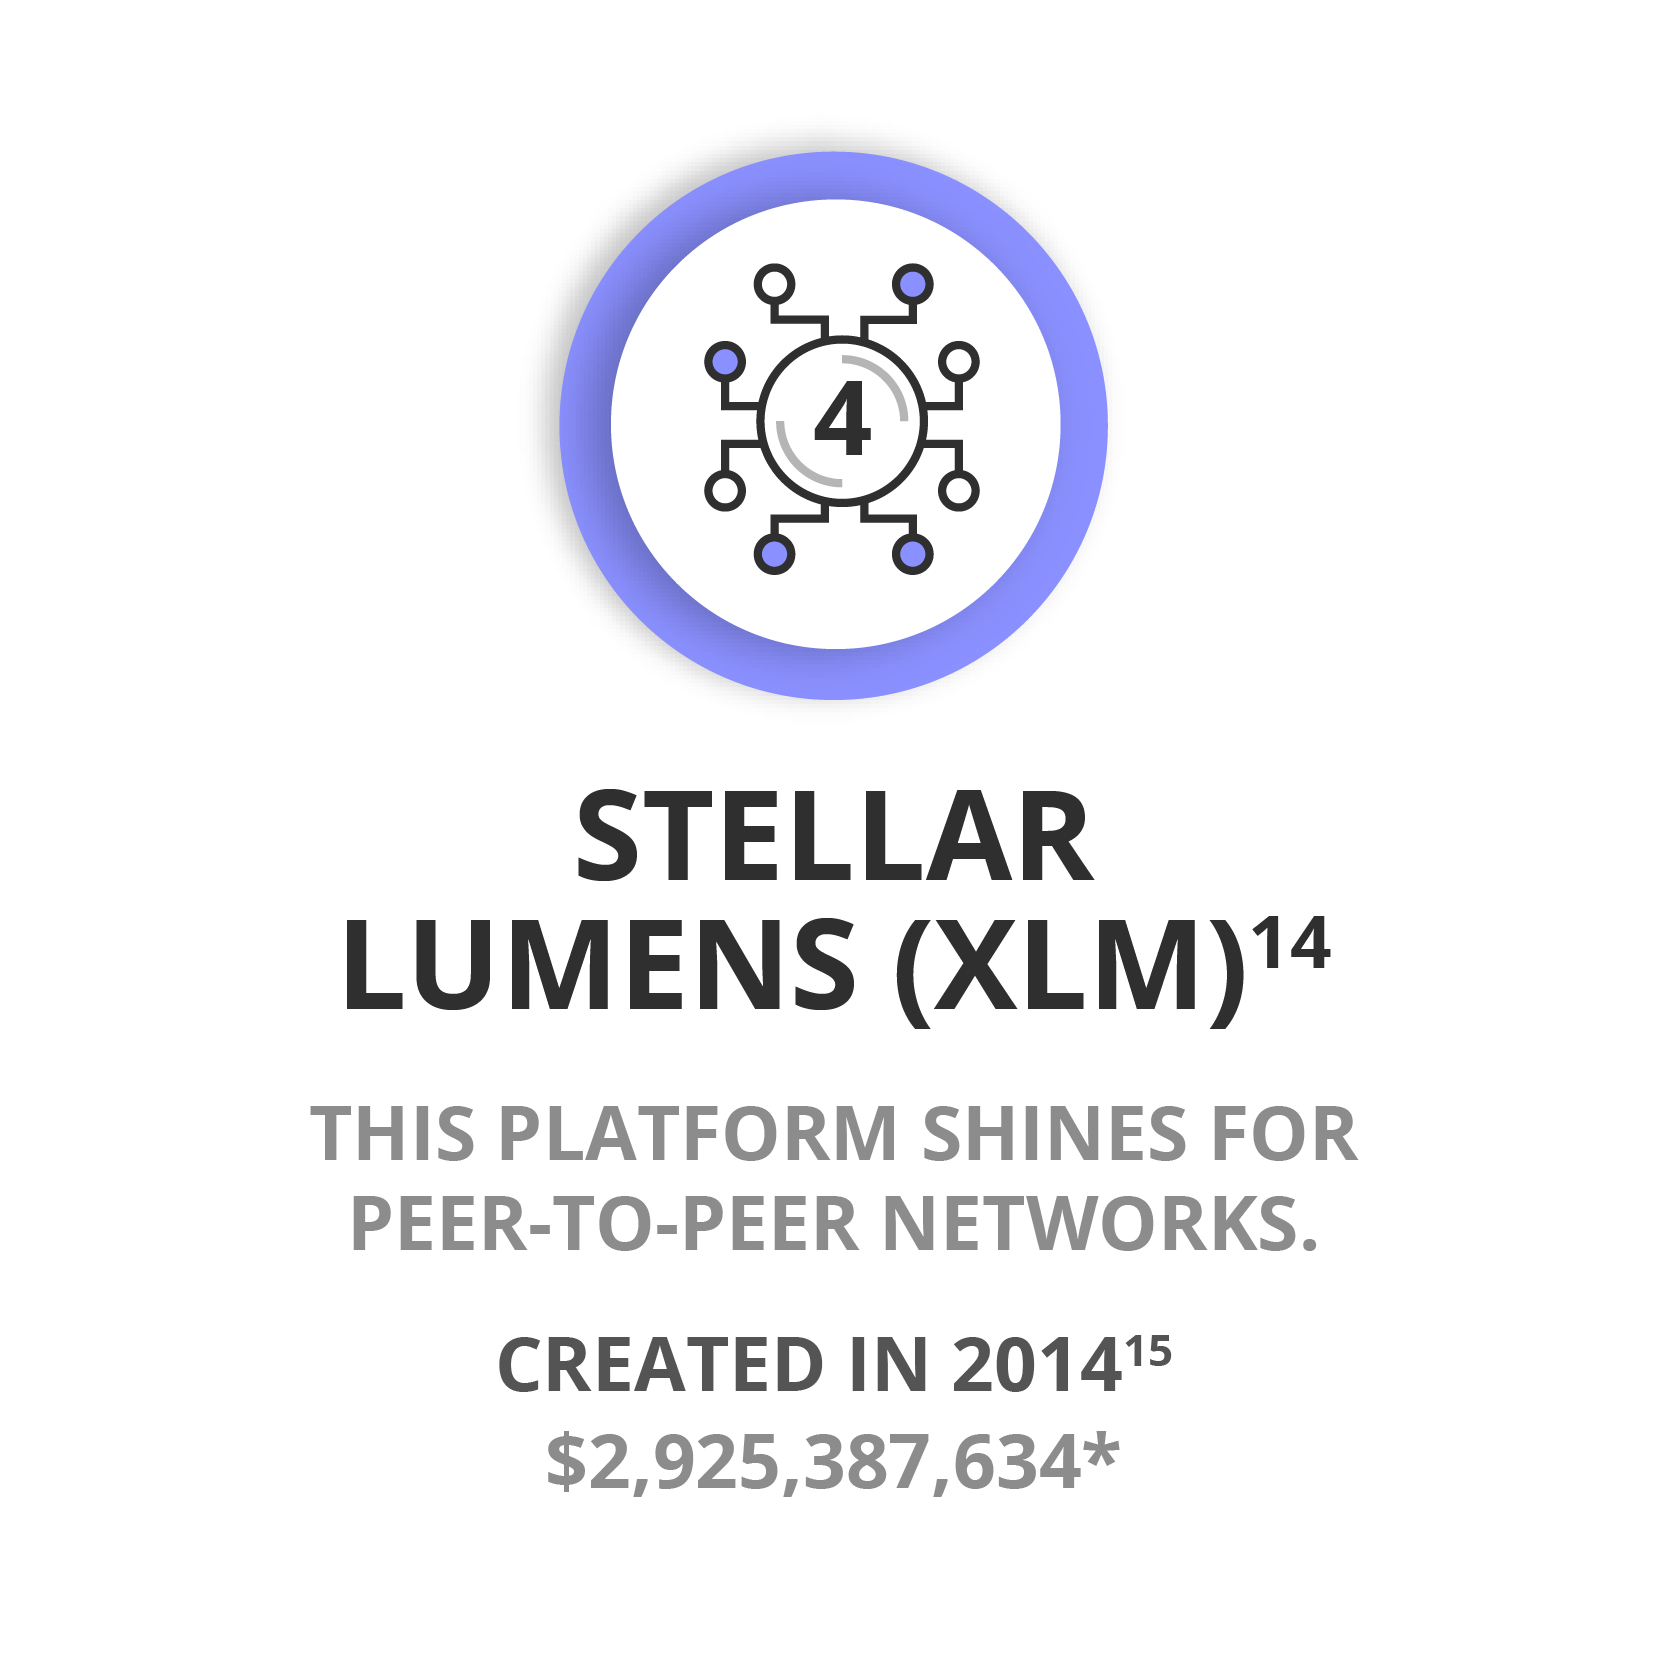 Stellar Lumens (XLM). This platform shines for peer-to-peer networks